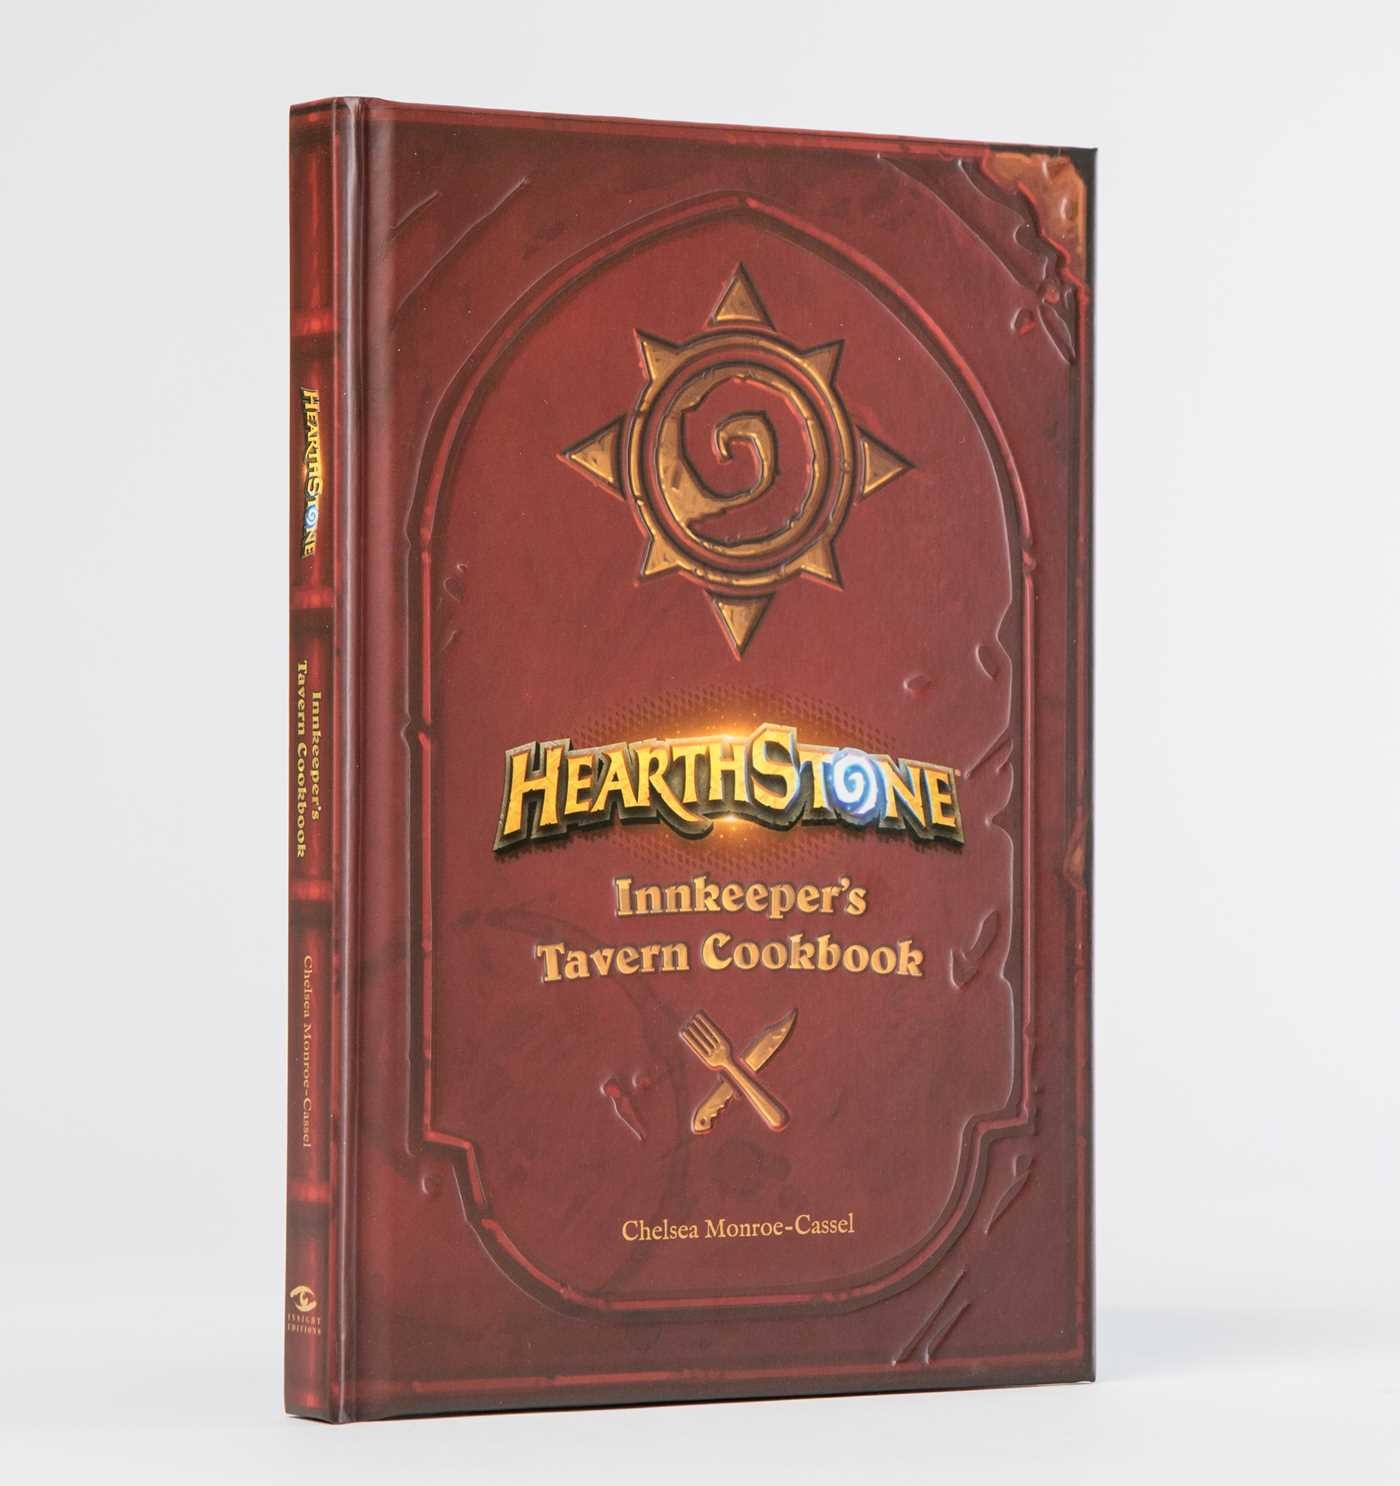 Hearthstone innkeepers tavern cookbook 9781683831426.in06